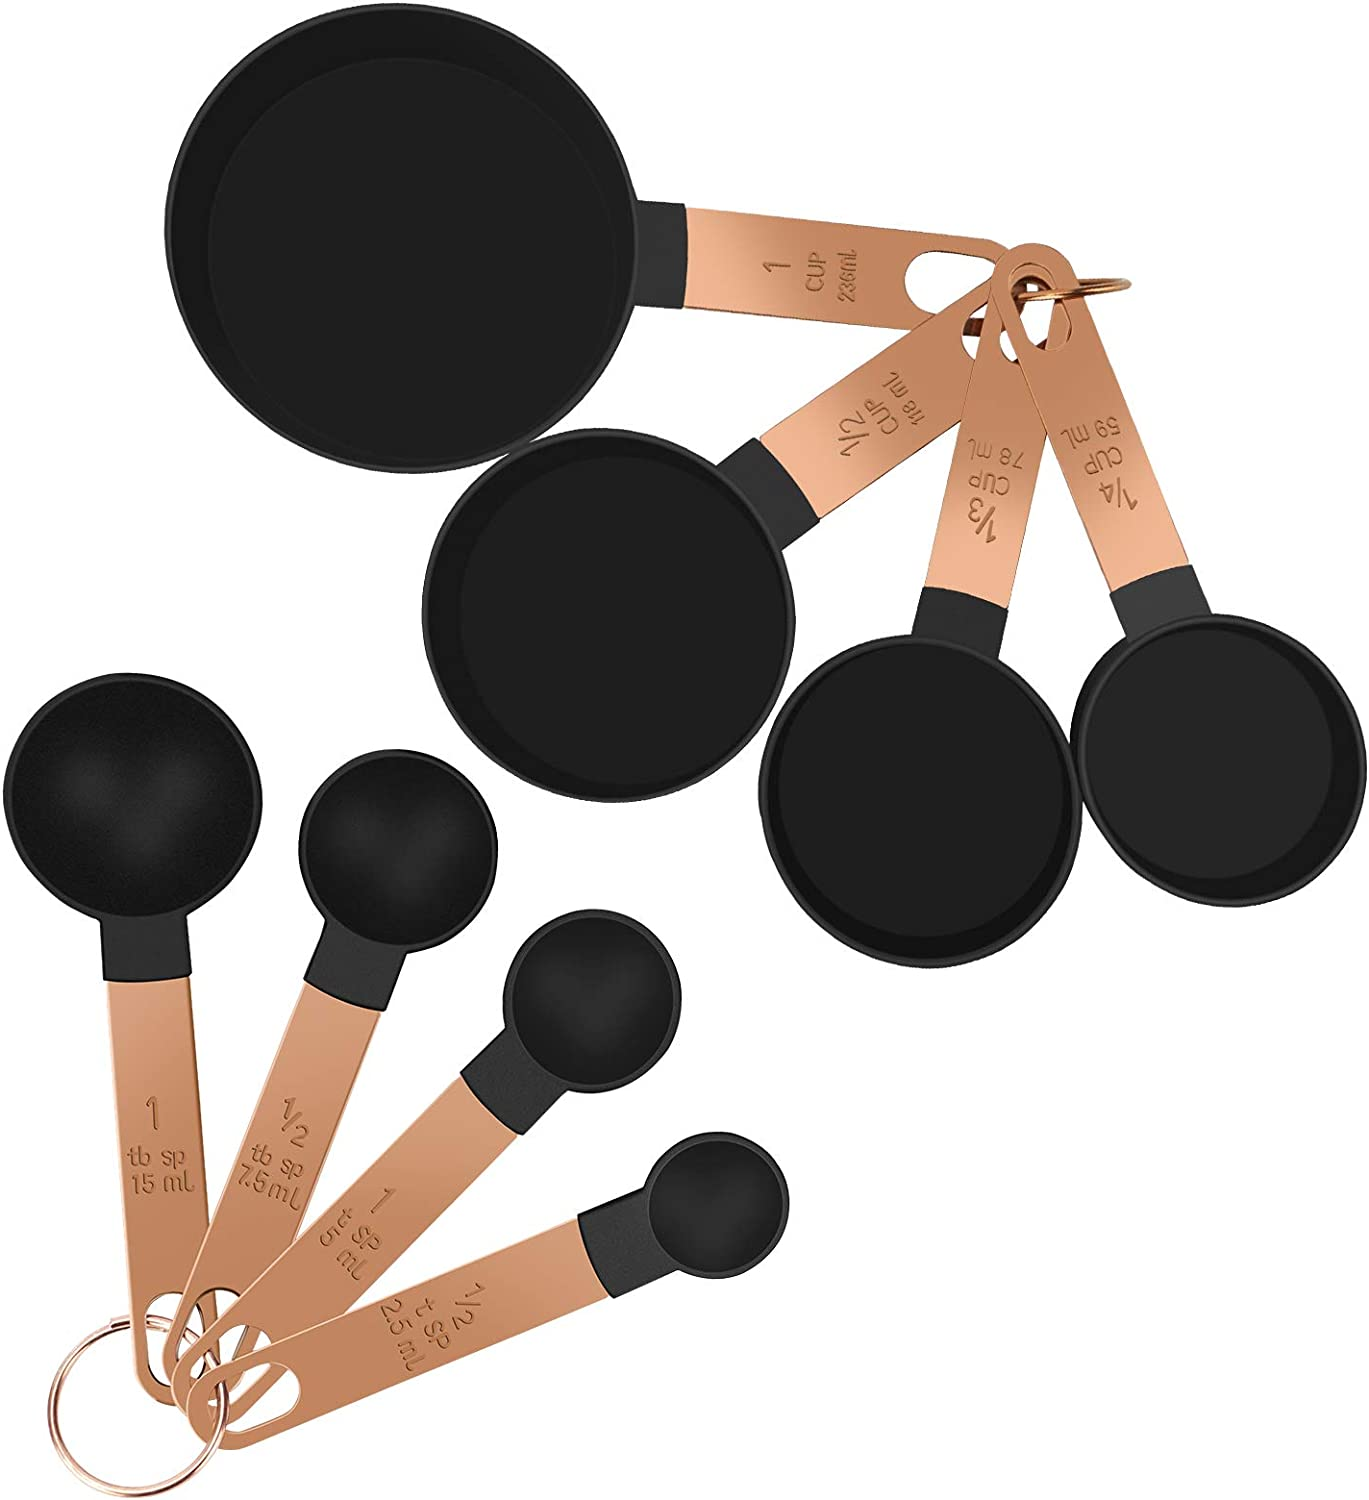 8-Piece Measuring Spoons Black Handle Gold Long Beach Max 66% OFF Mall Cups